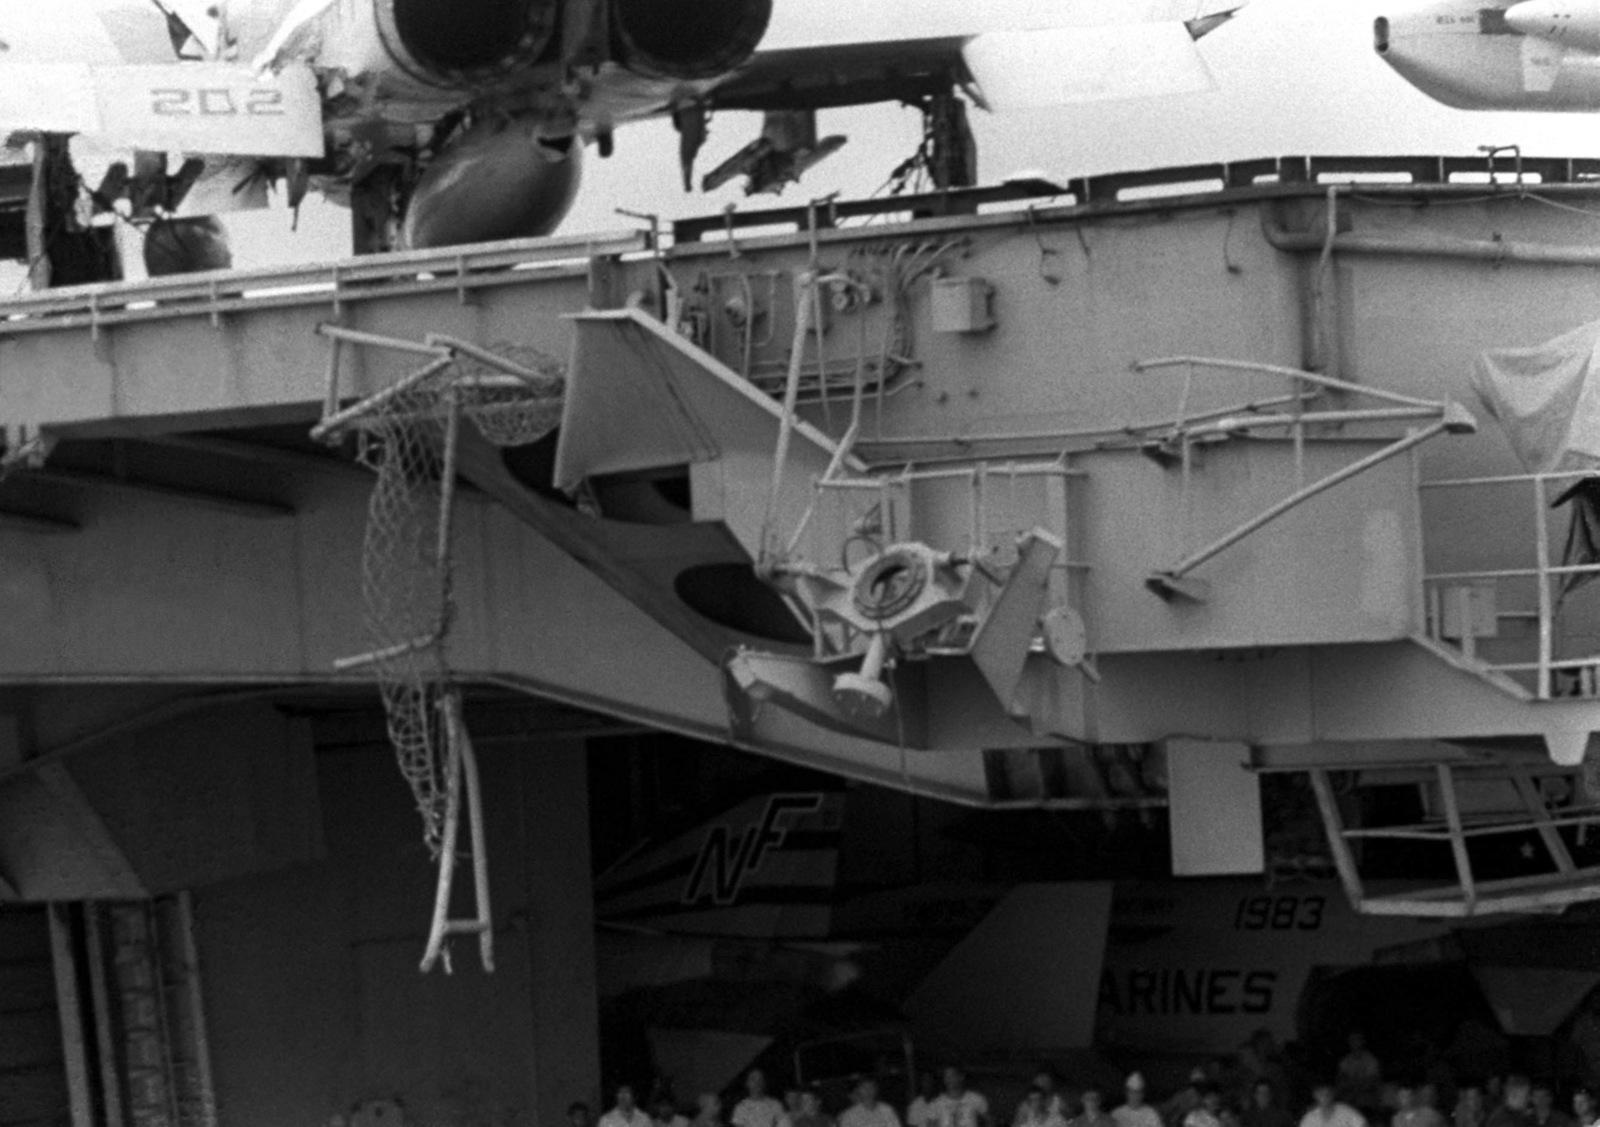 A view of damage caused to the port side aircraft elevator of the aircraft carrier USS MIDWAY (CV 41) when it collided with the Panamanian freighter CACTUS